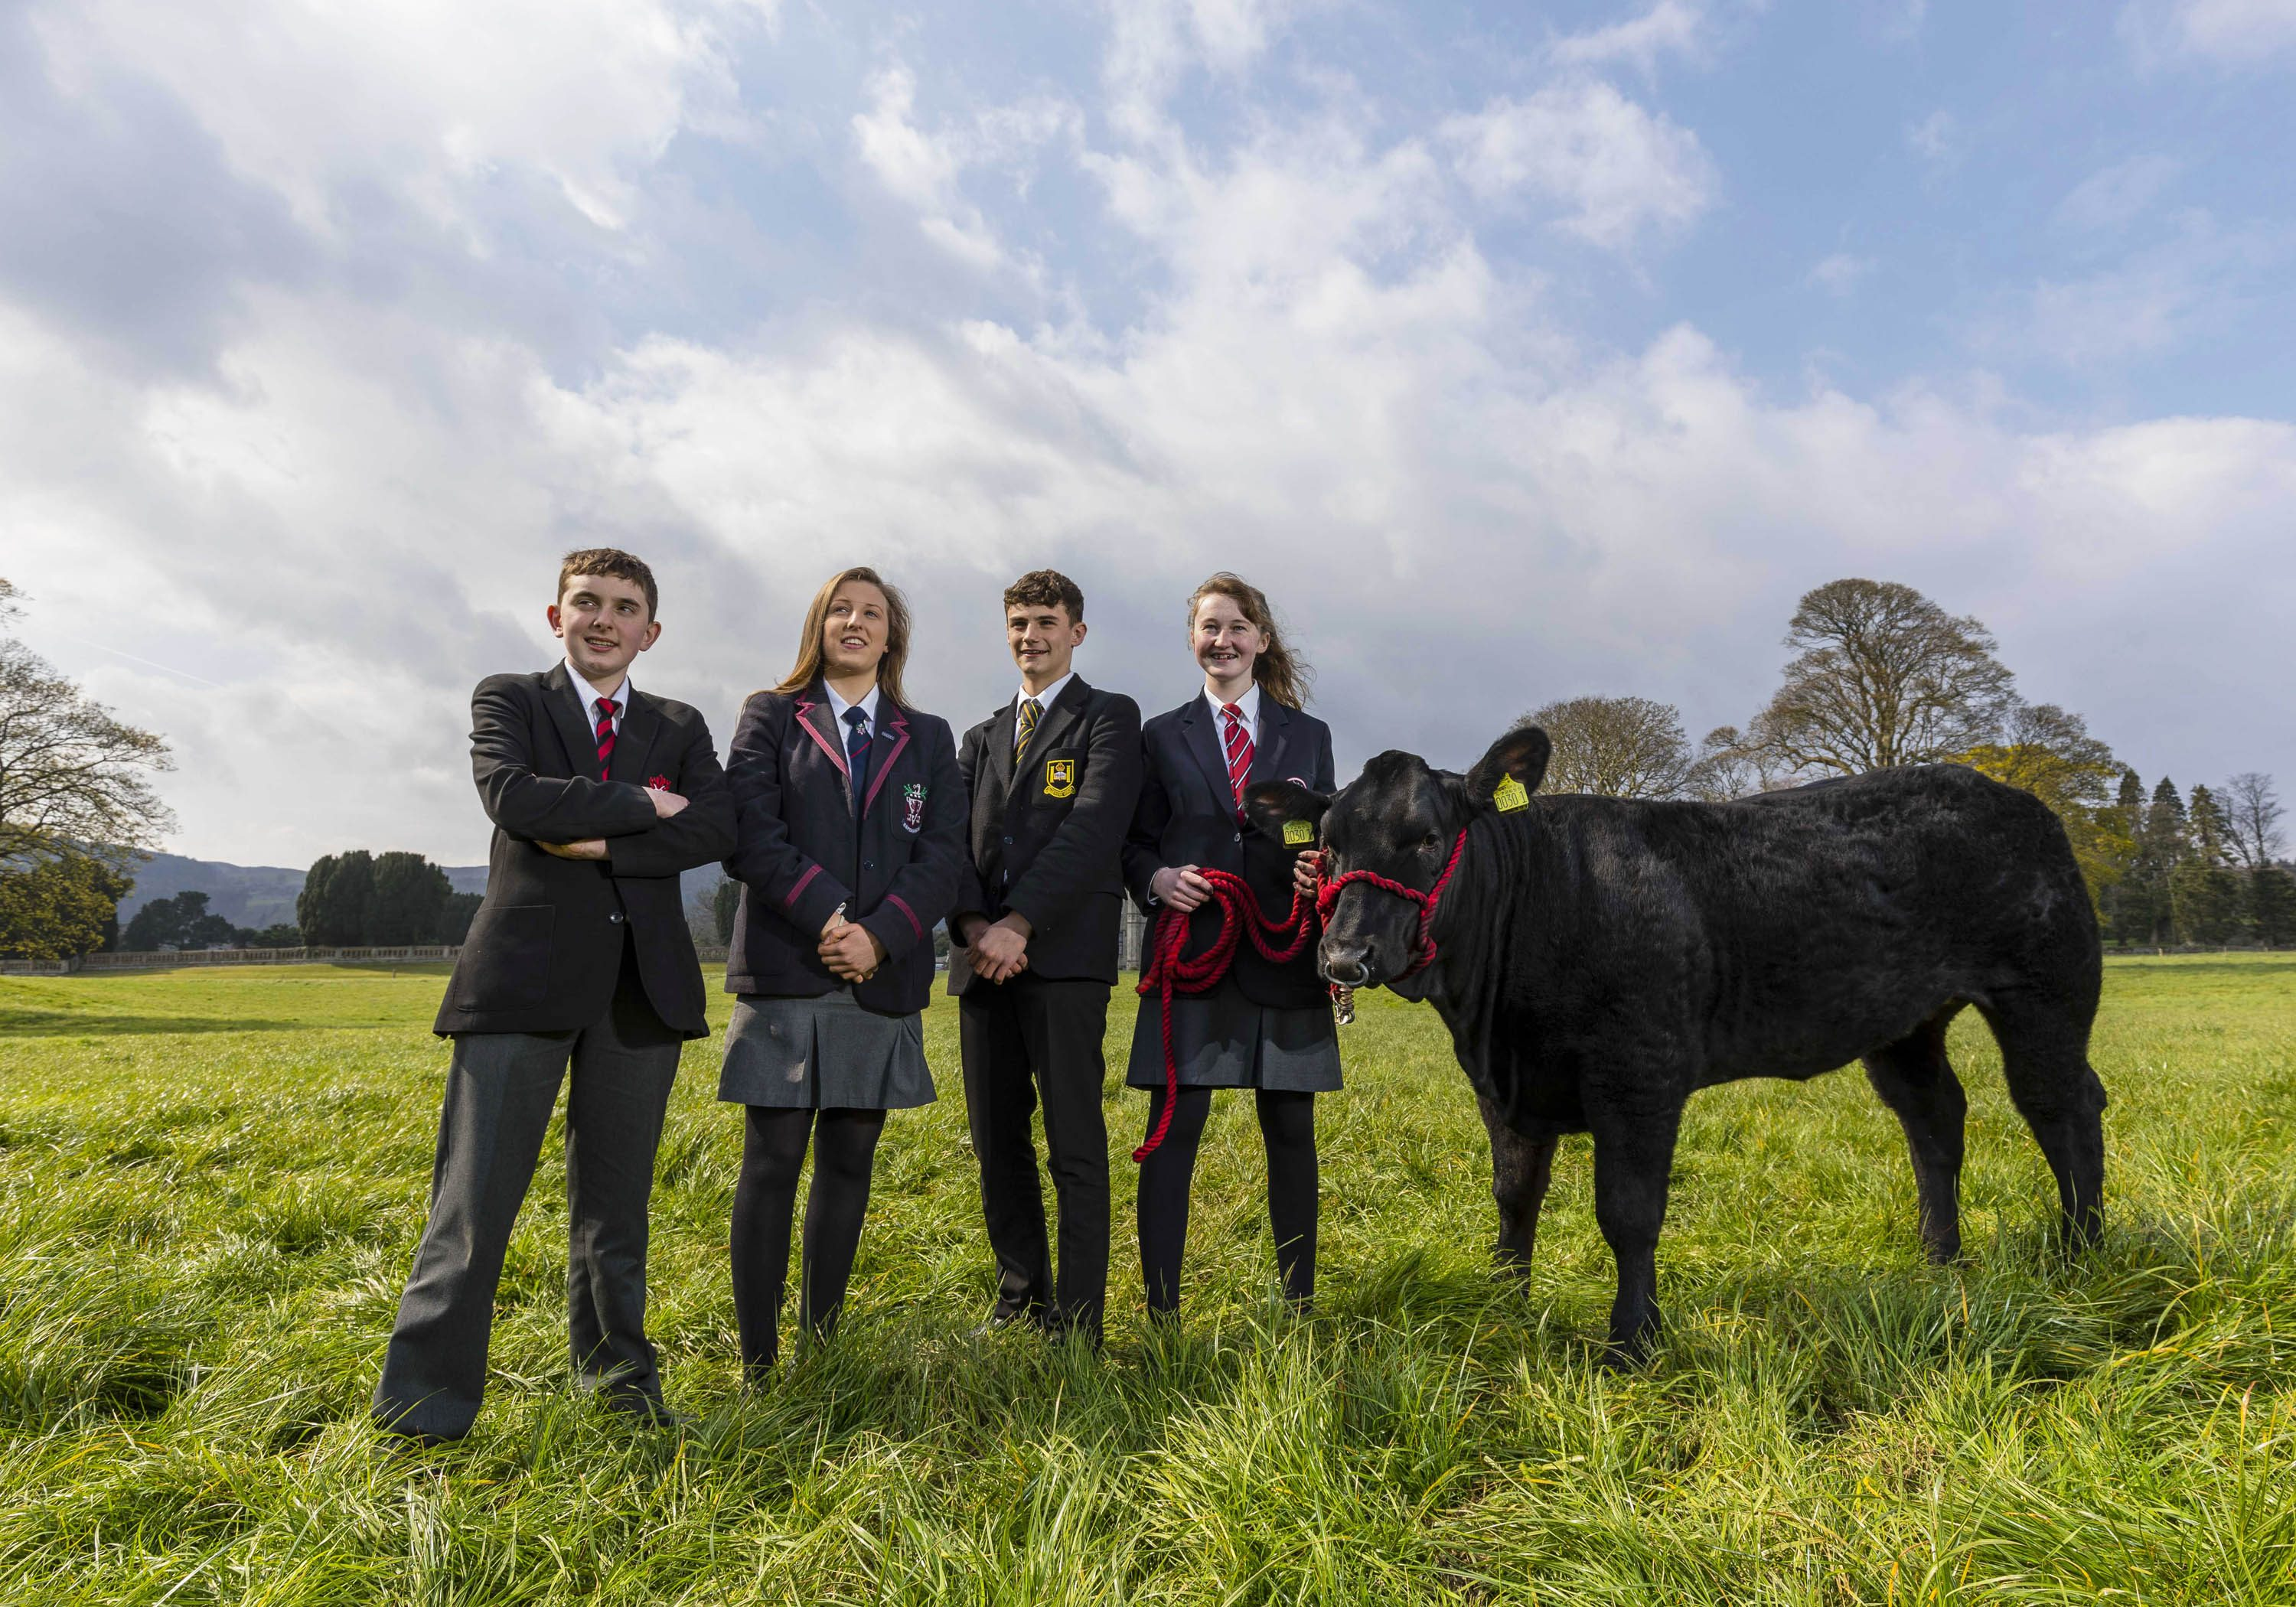 2019 ABP ANGUS YOUTH CHALLENGE FINALIST SCHOOLS ANNOUNCED